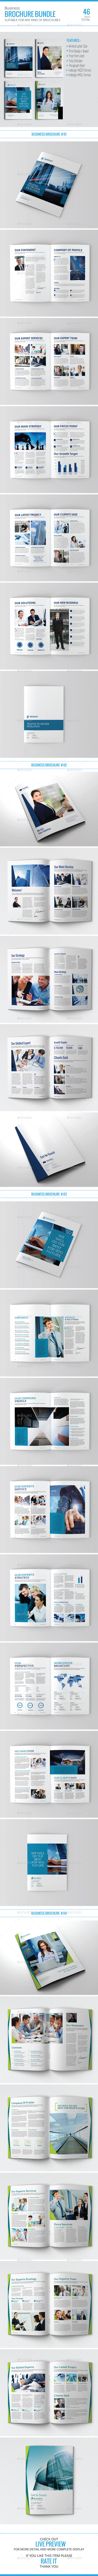 GraphicRiver Business Brochure Bundle Vol 04 9597230